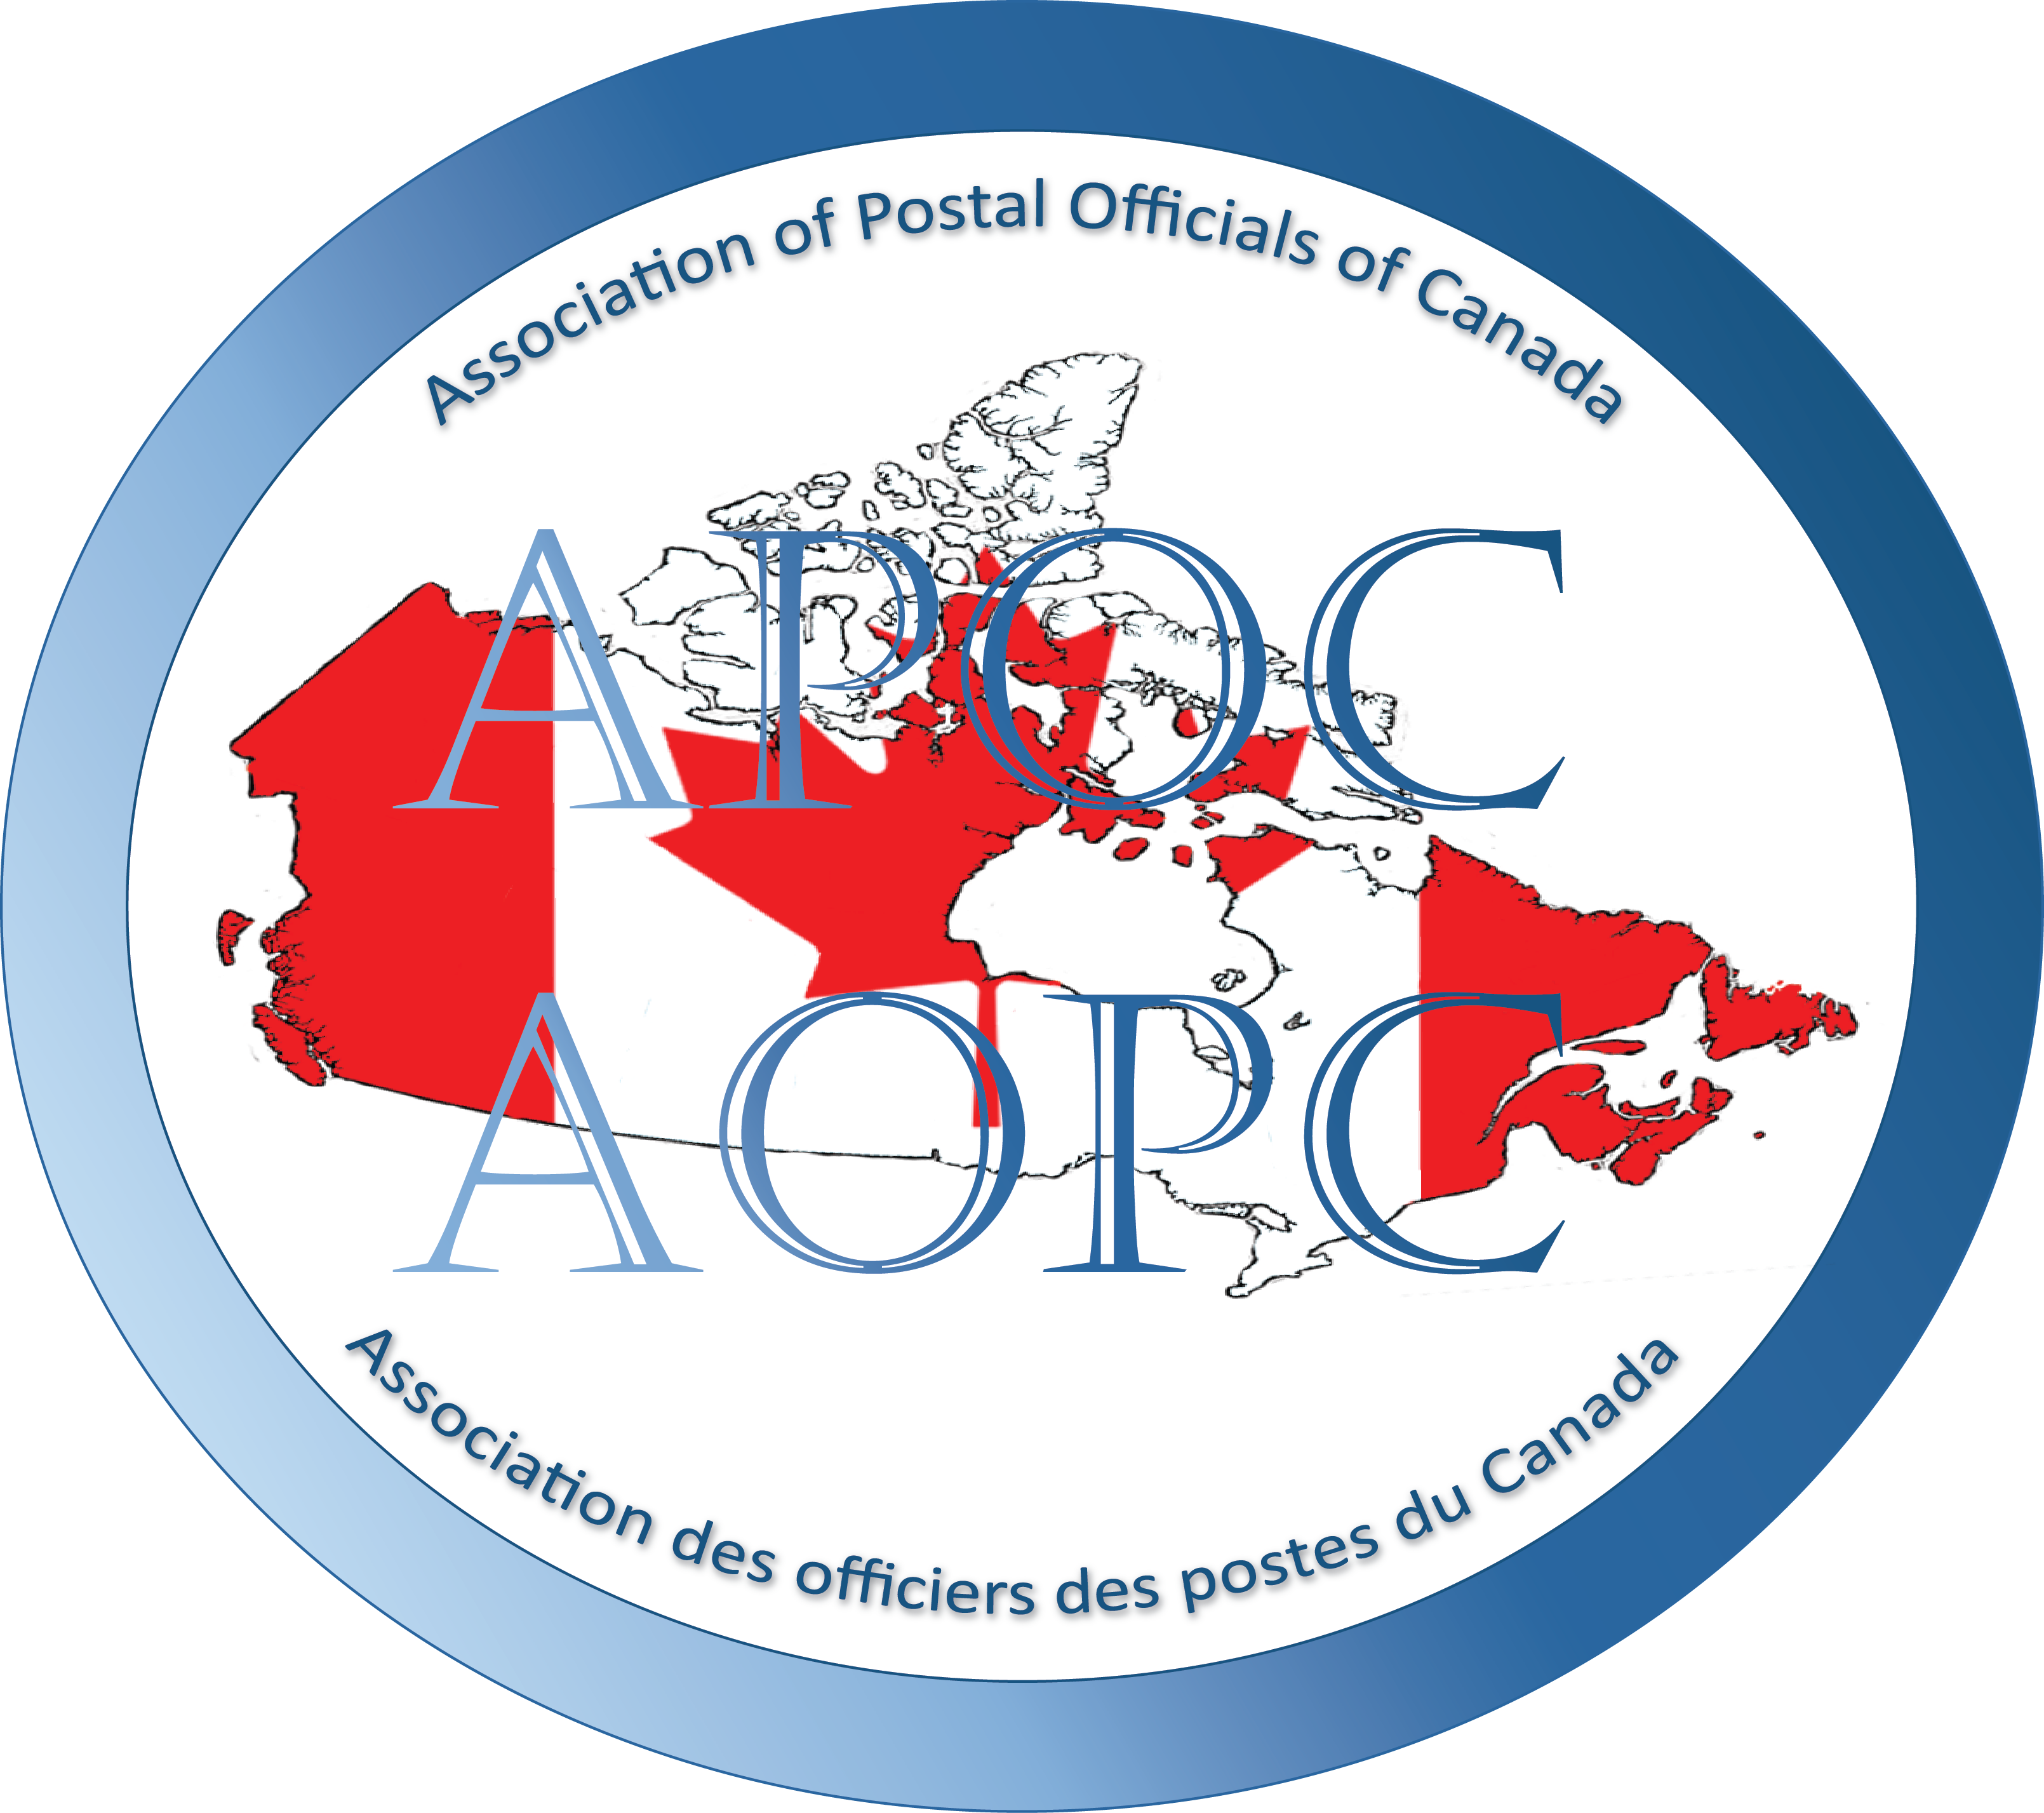 APOC Atlantic